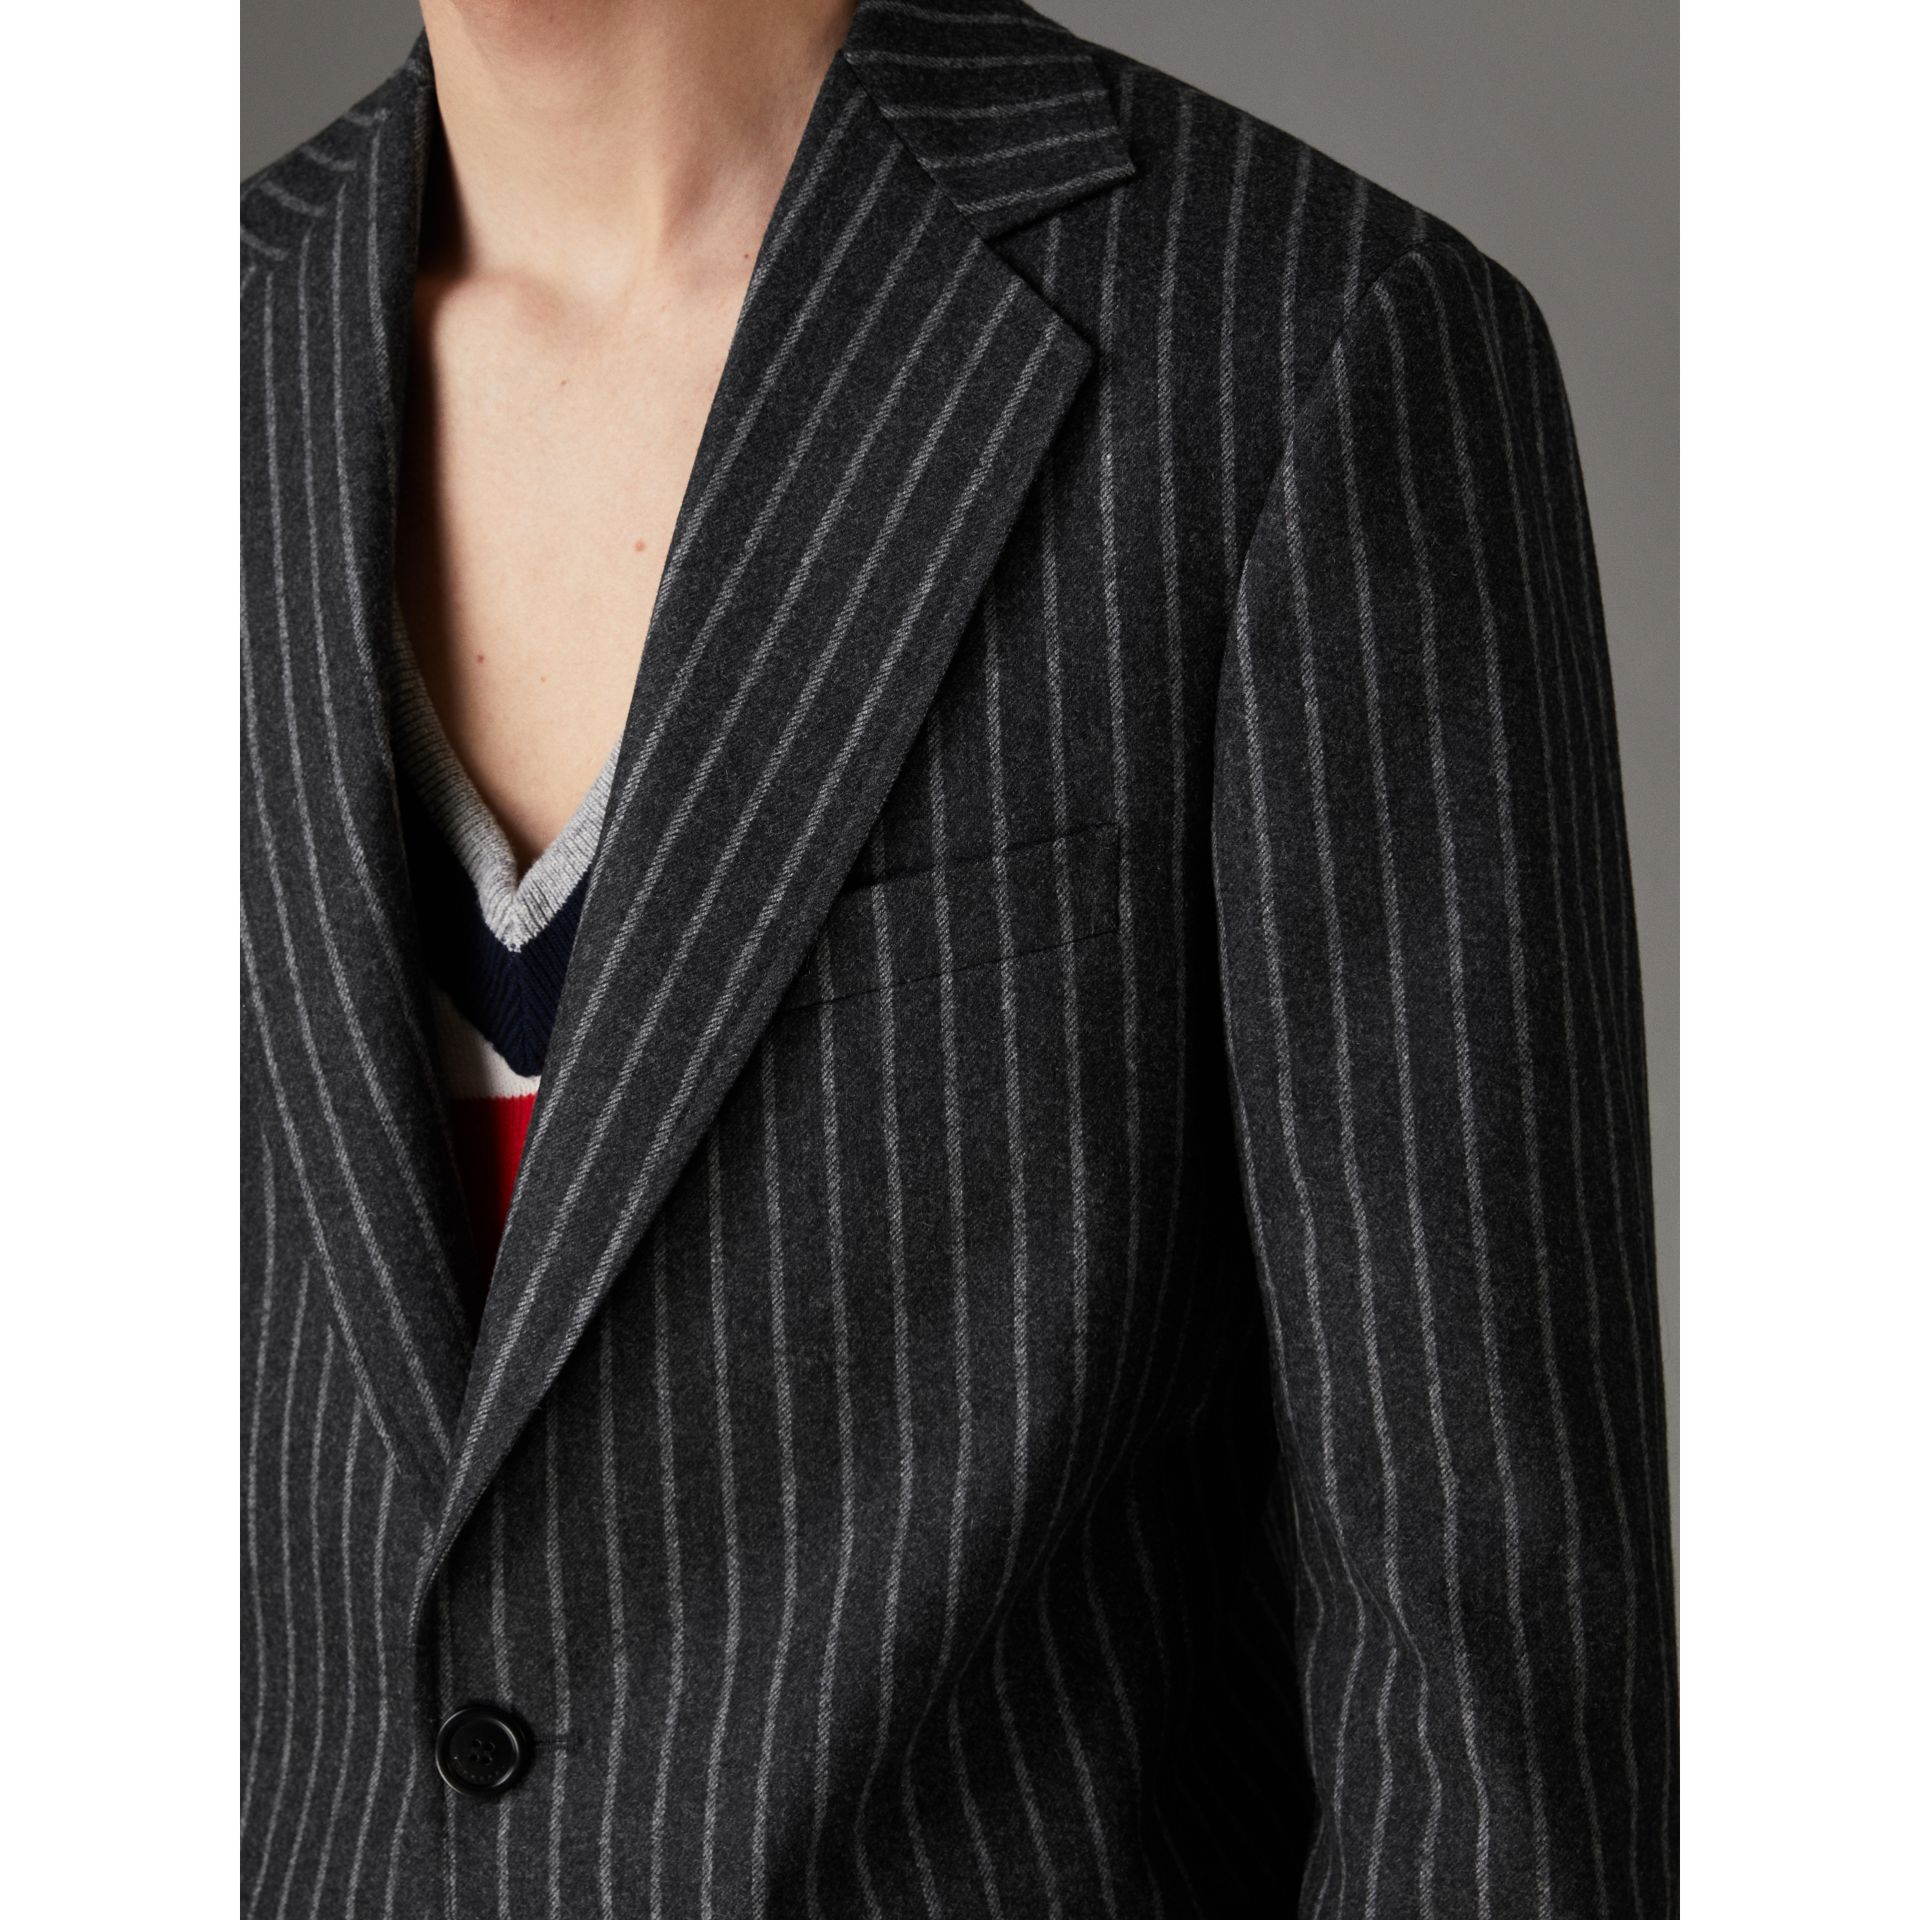 Pinstriped Wool Blend Twill Tailored Jacket in Dark Grey | Burberry United States - gallery image 1